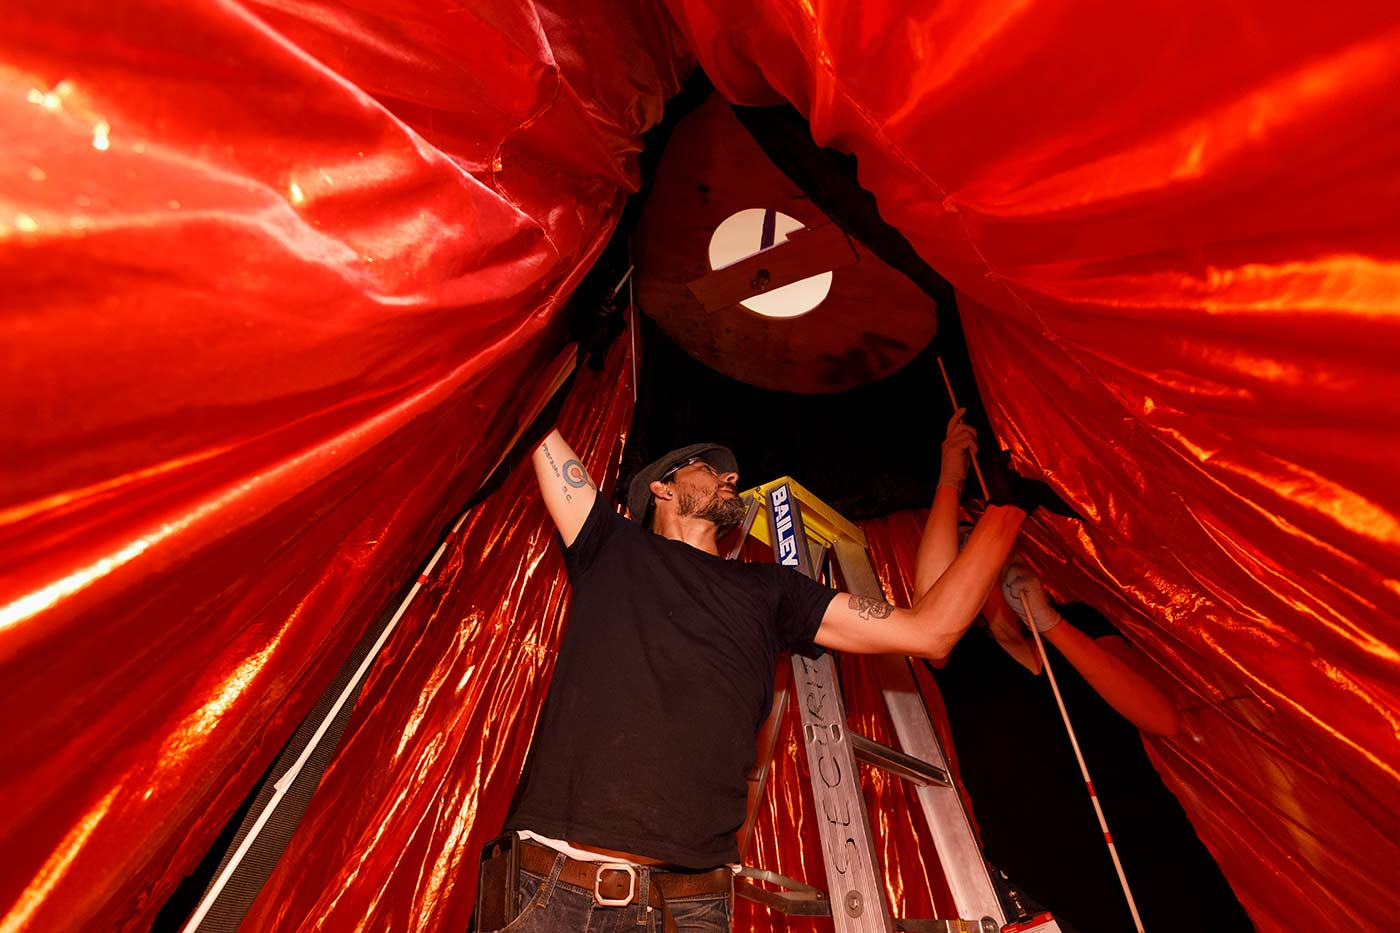 Colour photo of a man and a woman working on the interior of a large object constructed from red fabric mounted on a frame. - click to view larger image